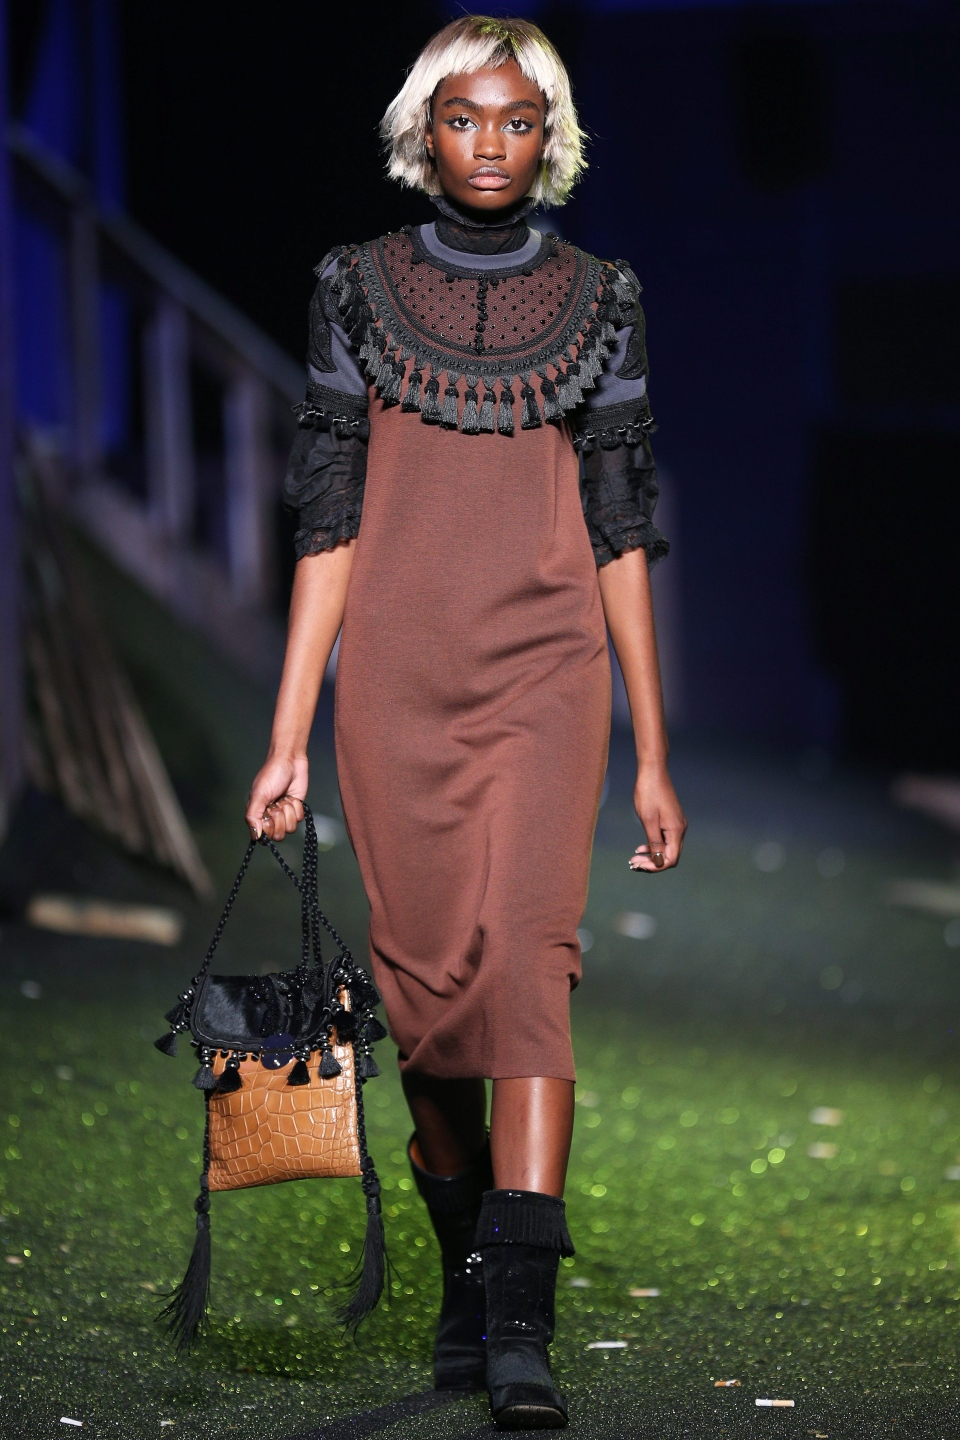 The Marc Jacobs Spring 2014 collection is modeled during Fashion Week in New York, Thursday, Sept. 12, 2013. (AP / John Minchillo)